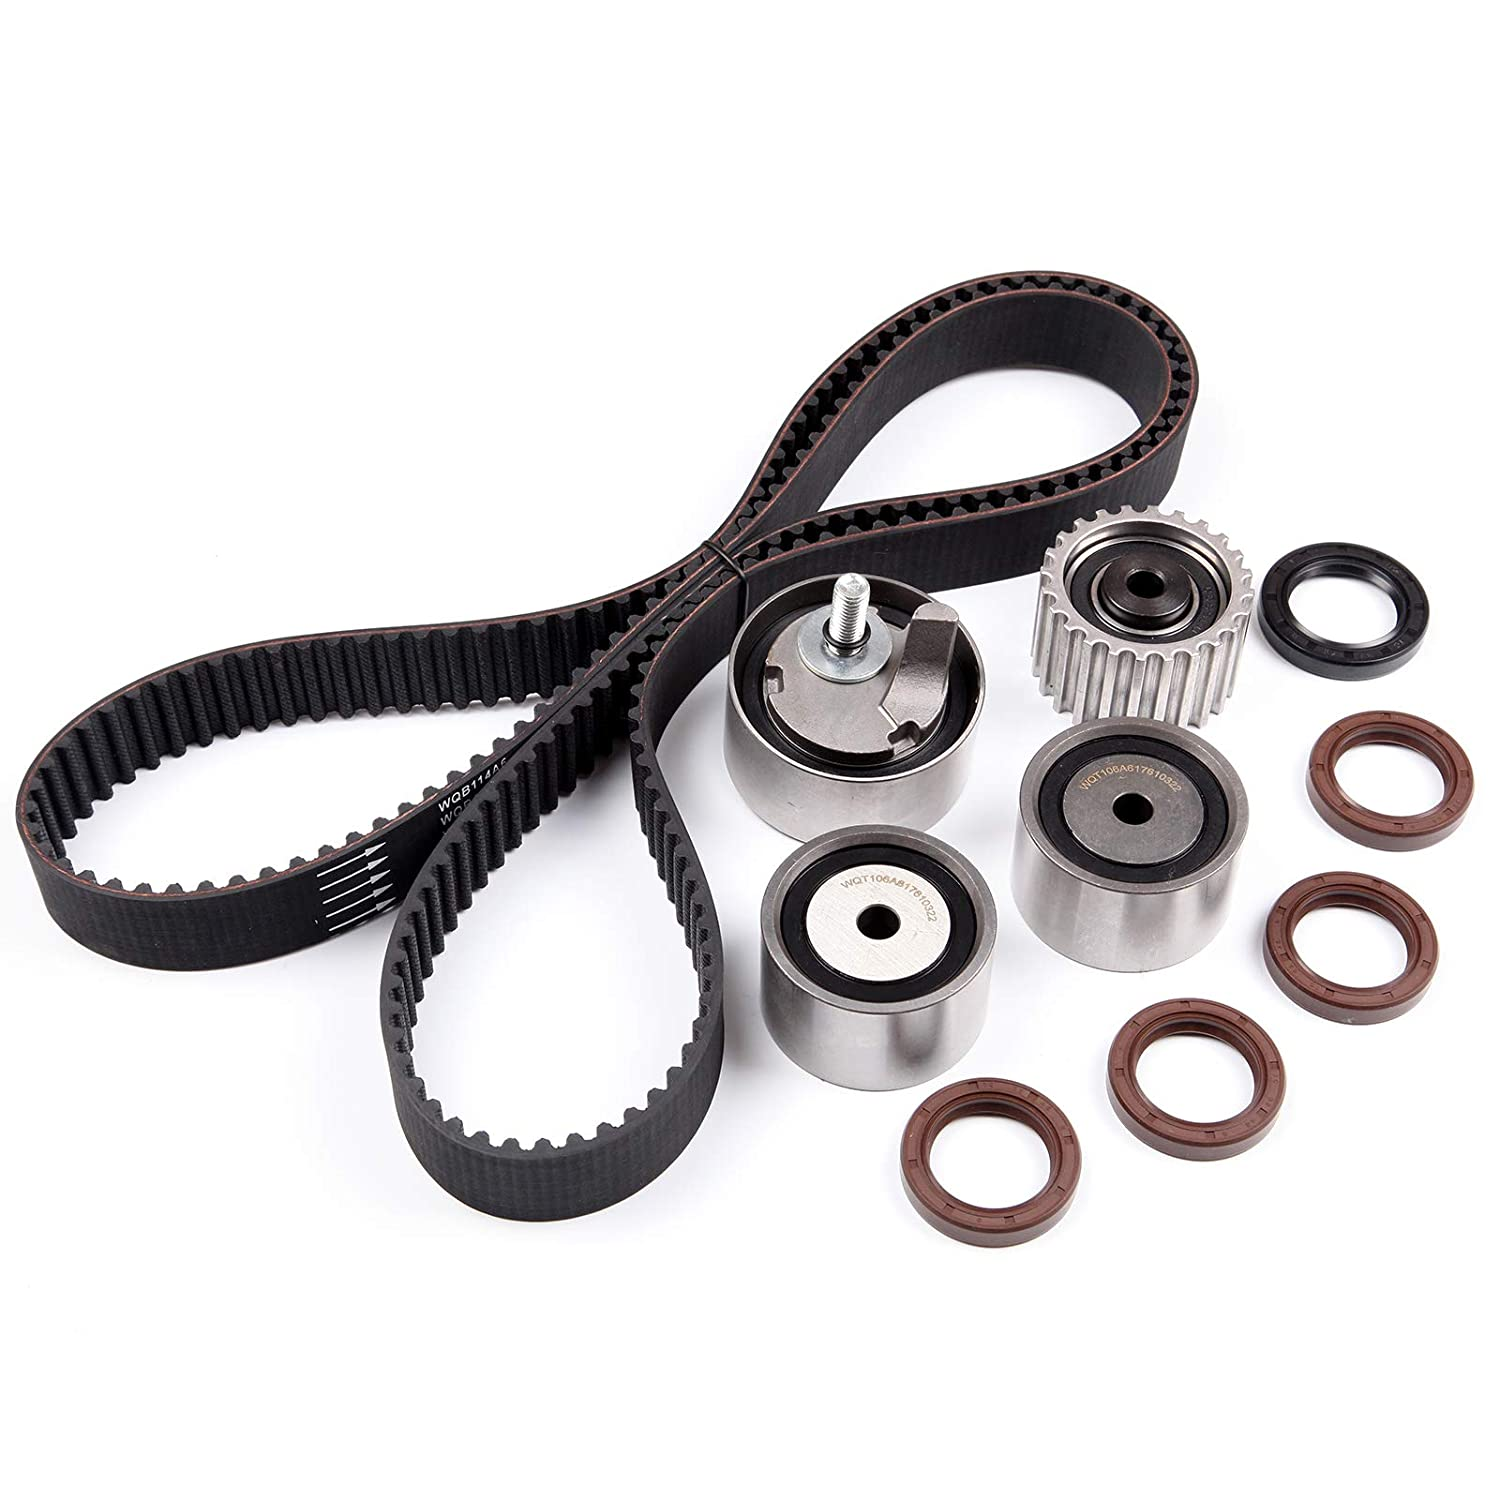 SCITOO Timing Belt Kit EJ18E EJ22E for 93-97 Subaru Impreza 1.8L 1781CC H4 SOHC